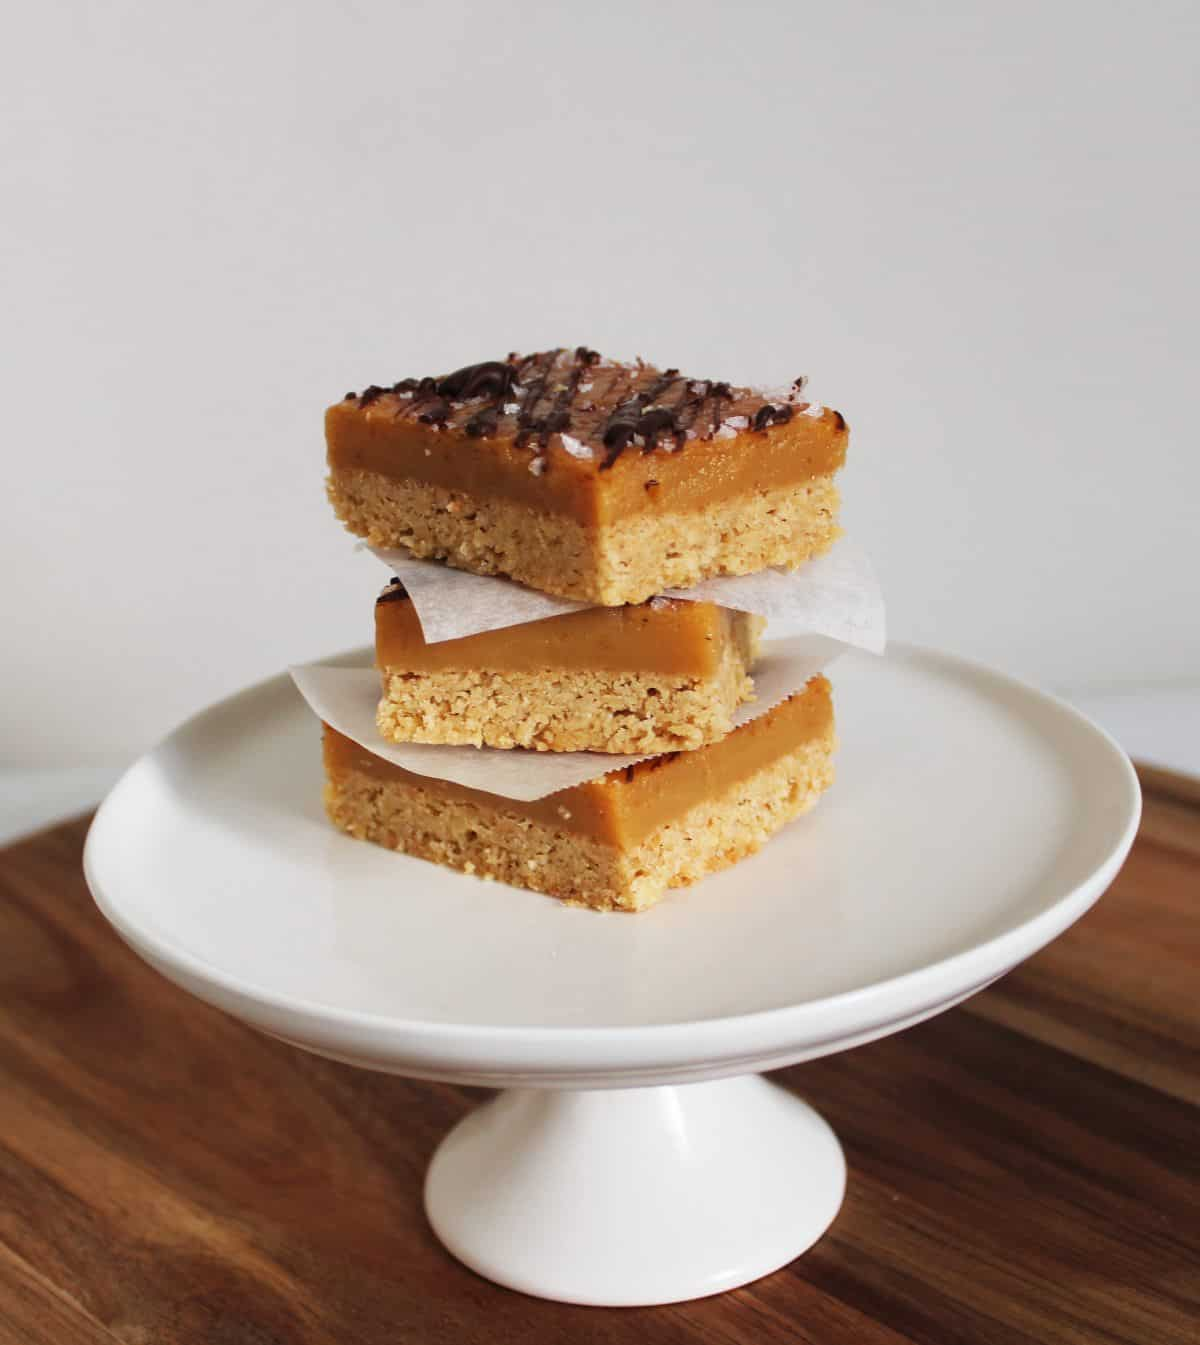 Three pieces of caramel slice stacked on a round white plate sitting on a wooden board.